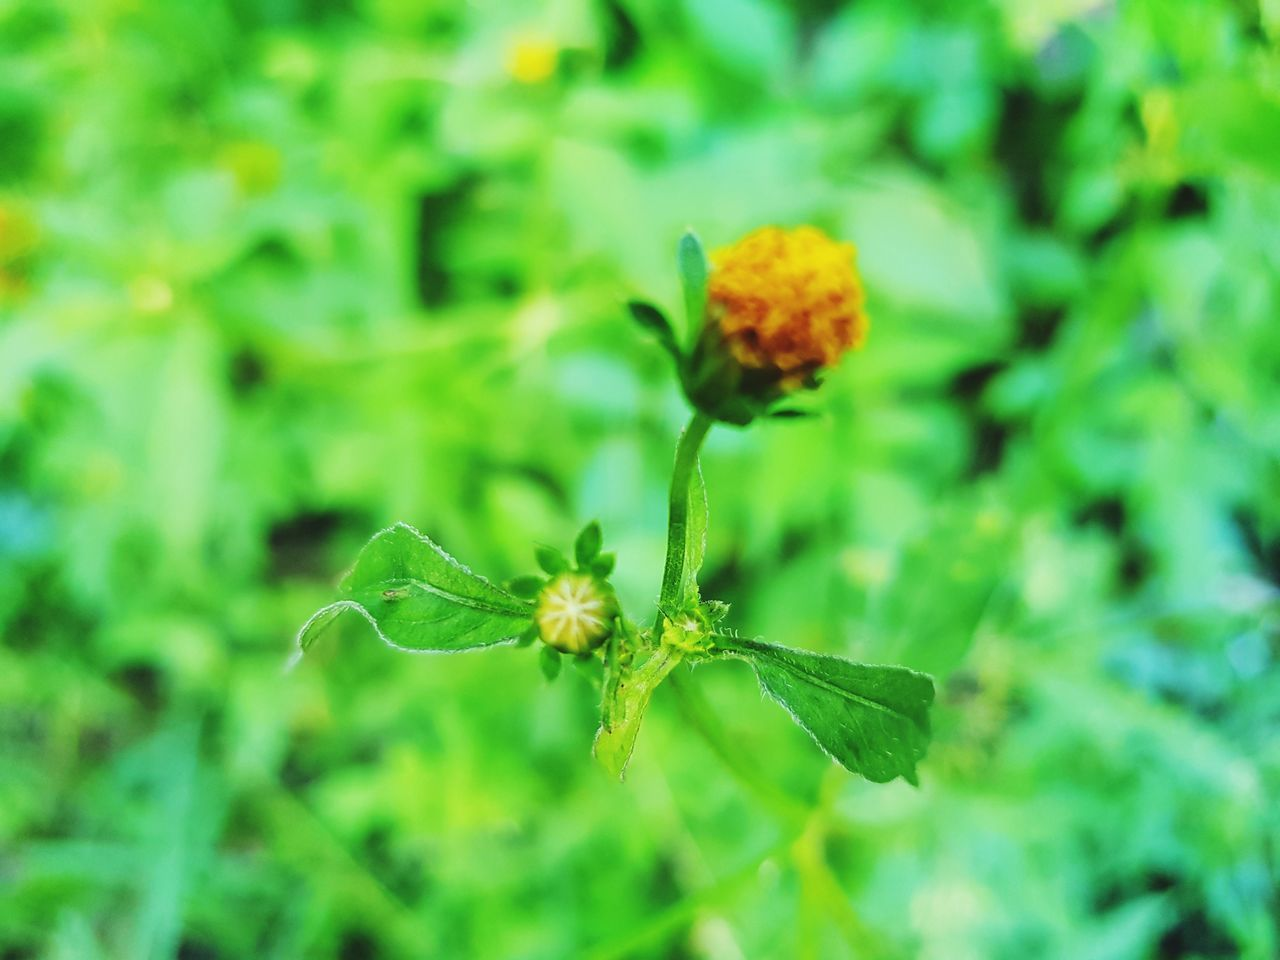 flower, growth, green color, plant, nature, fragility, beauty in nature, freshness, outdoors, no people, petal, flower head, close-up, day, leaf